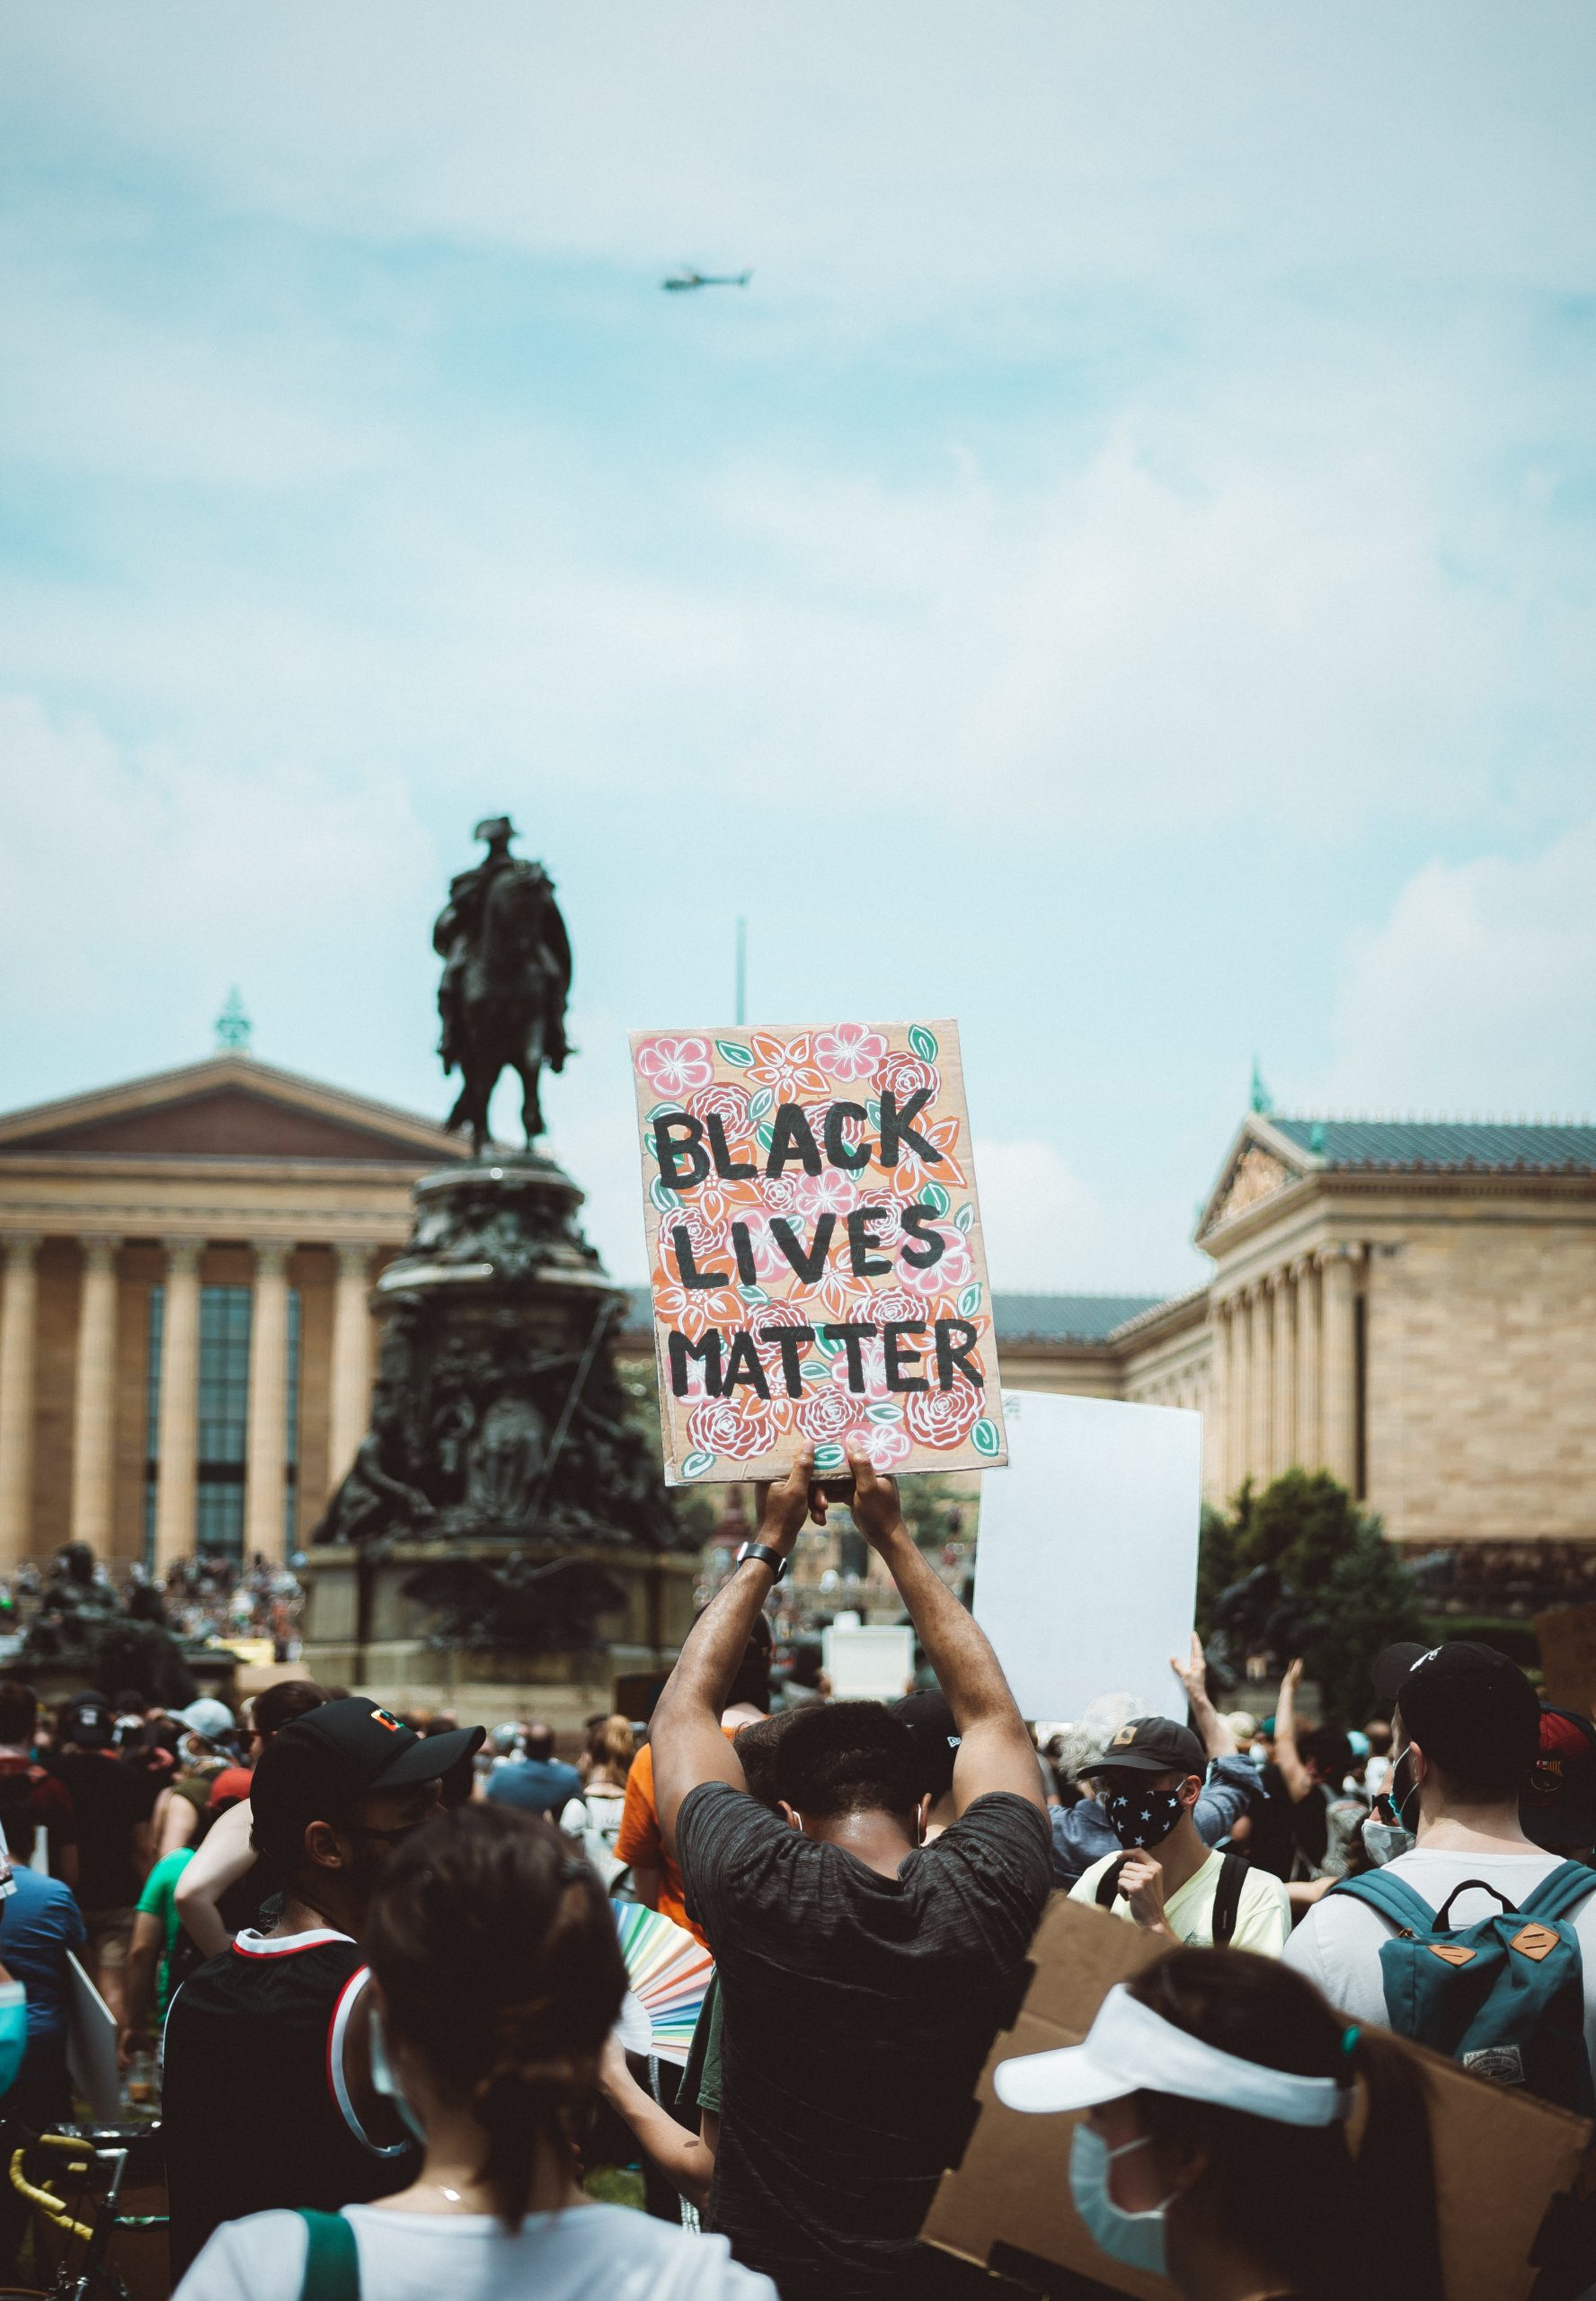 A person holding up a sign of black lives matter